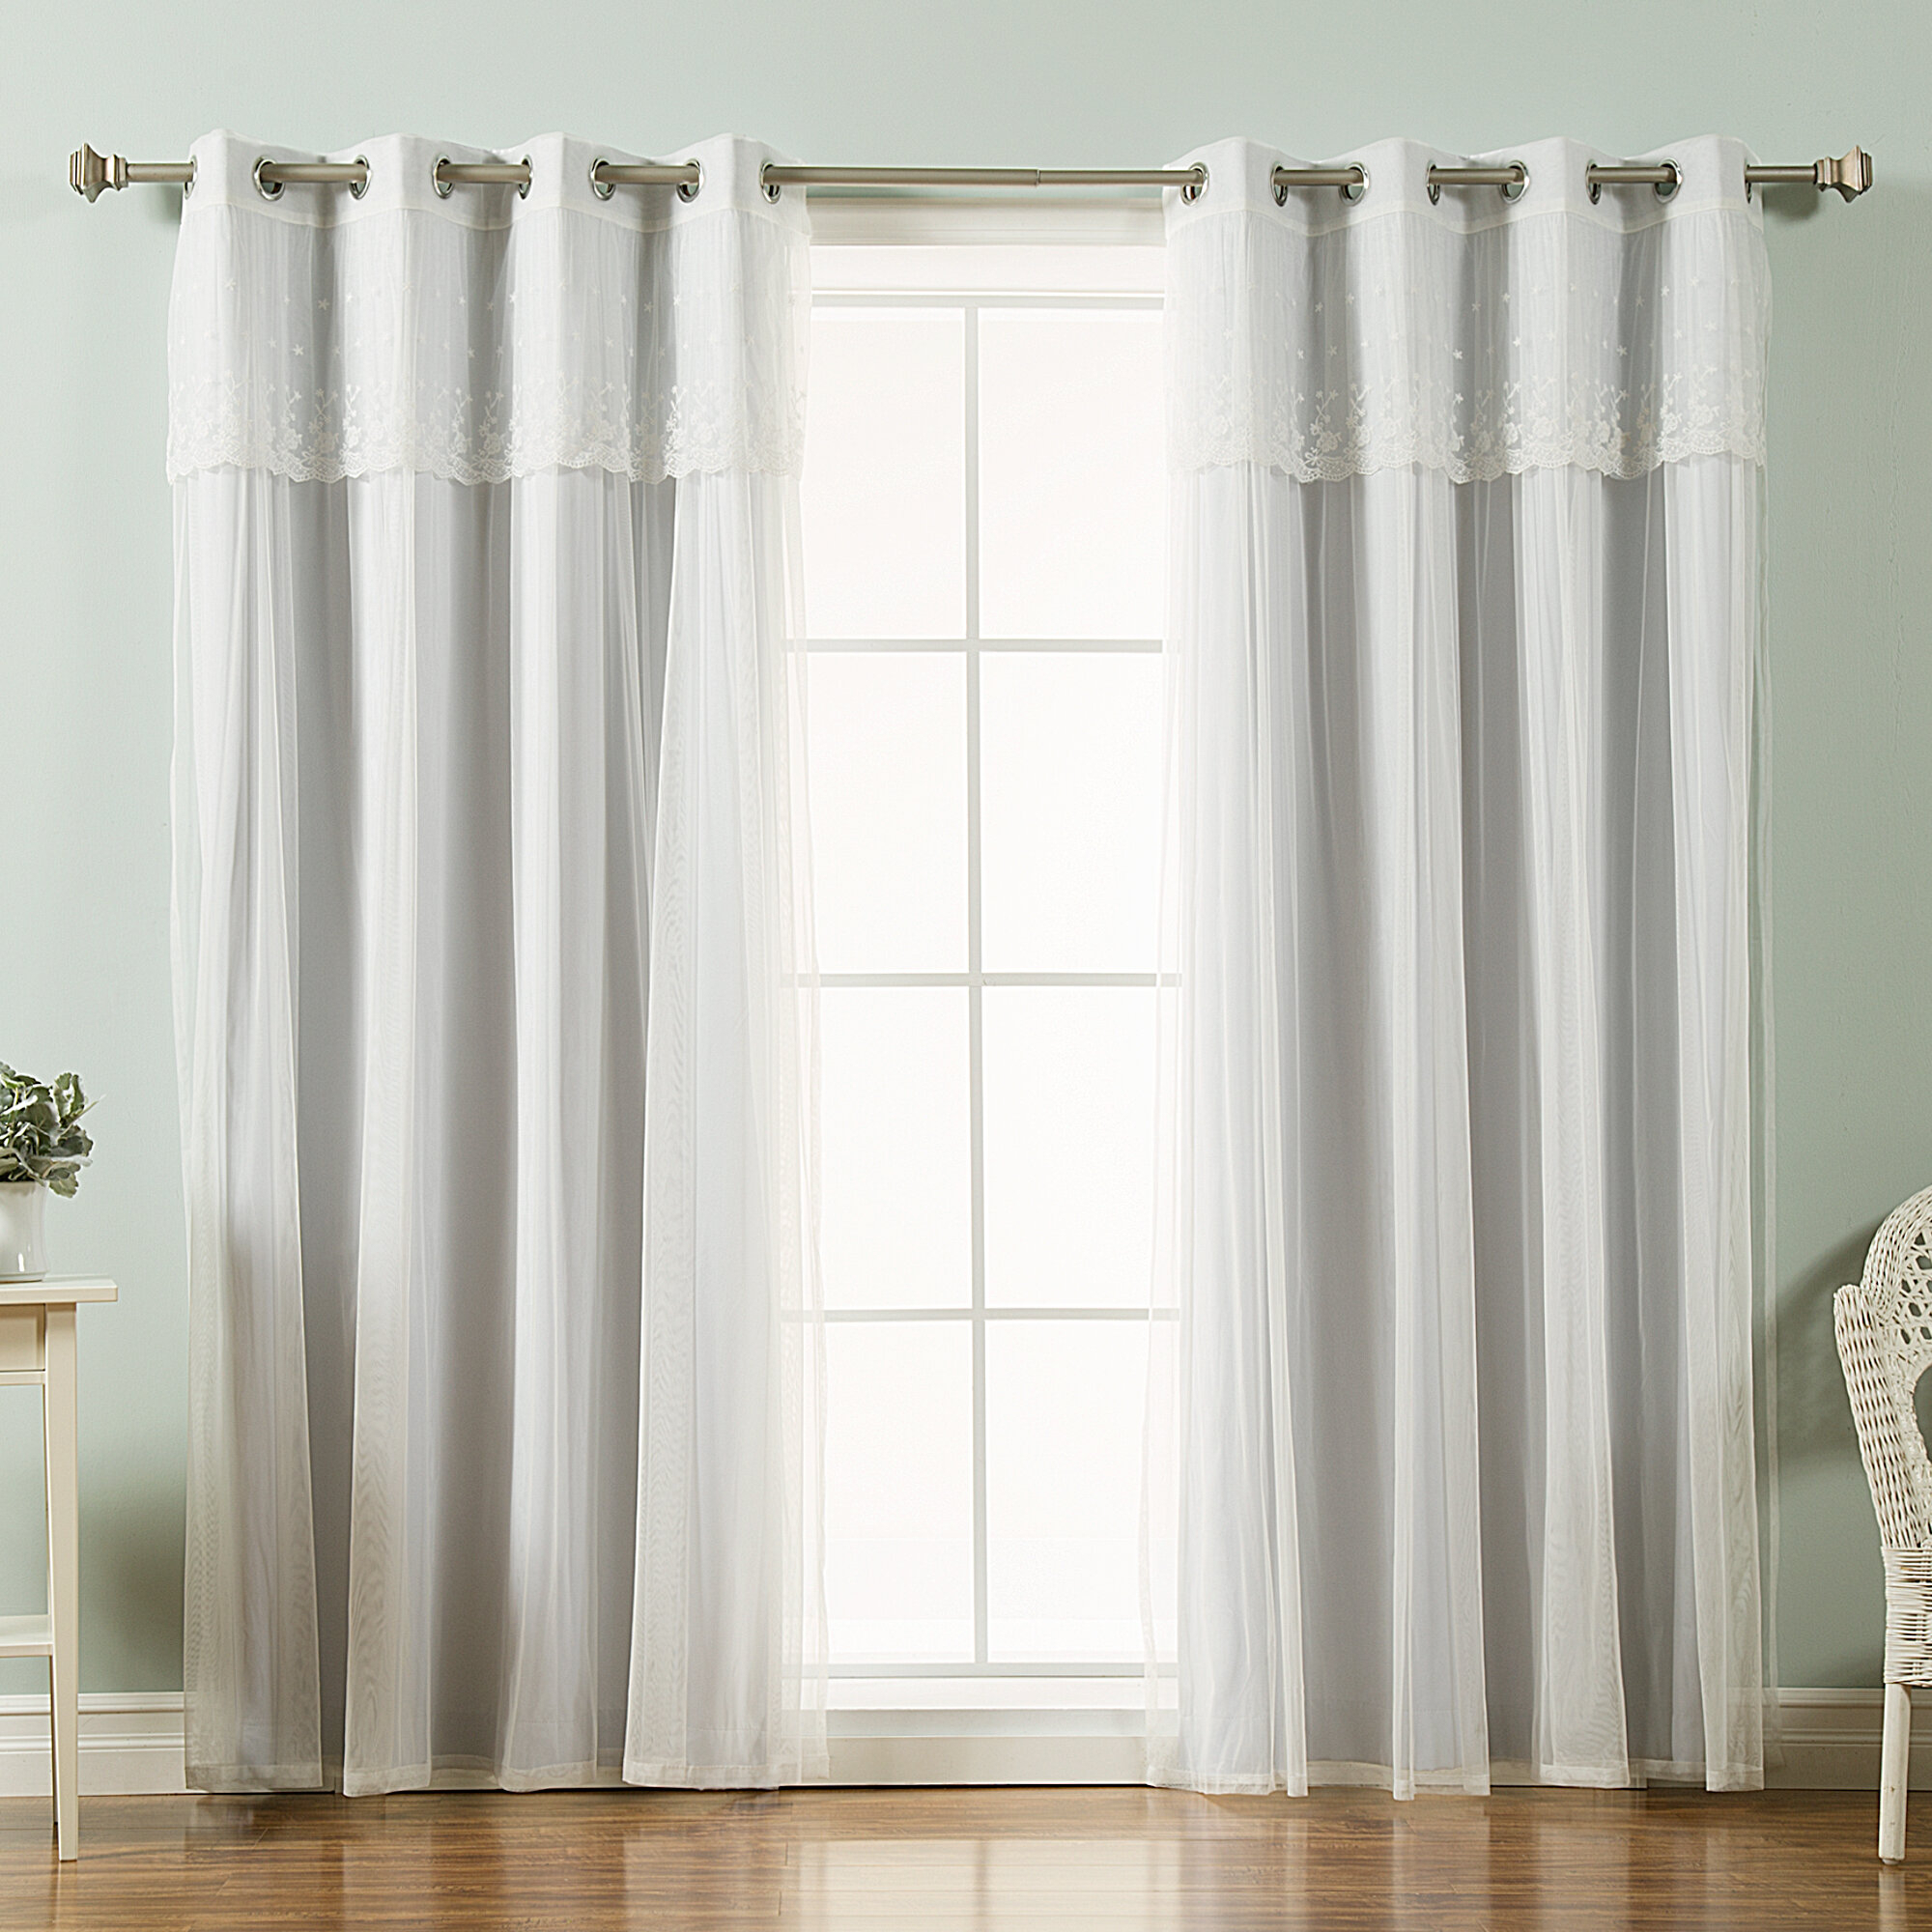 House Of Hampton Granados Tulle Solid Blackout Thermal Throughout Tulle Sheer With Attached Valance And Blackout 4 Piece Curtain Panel Pairs (View 7 of 30)